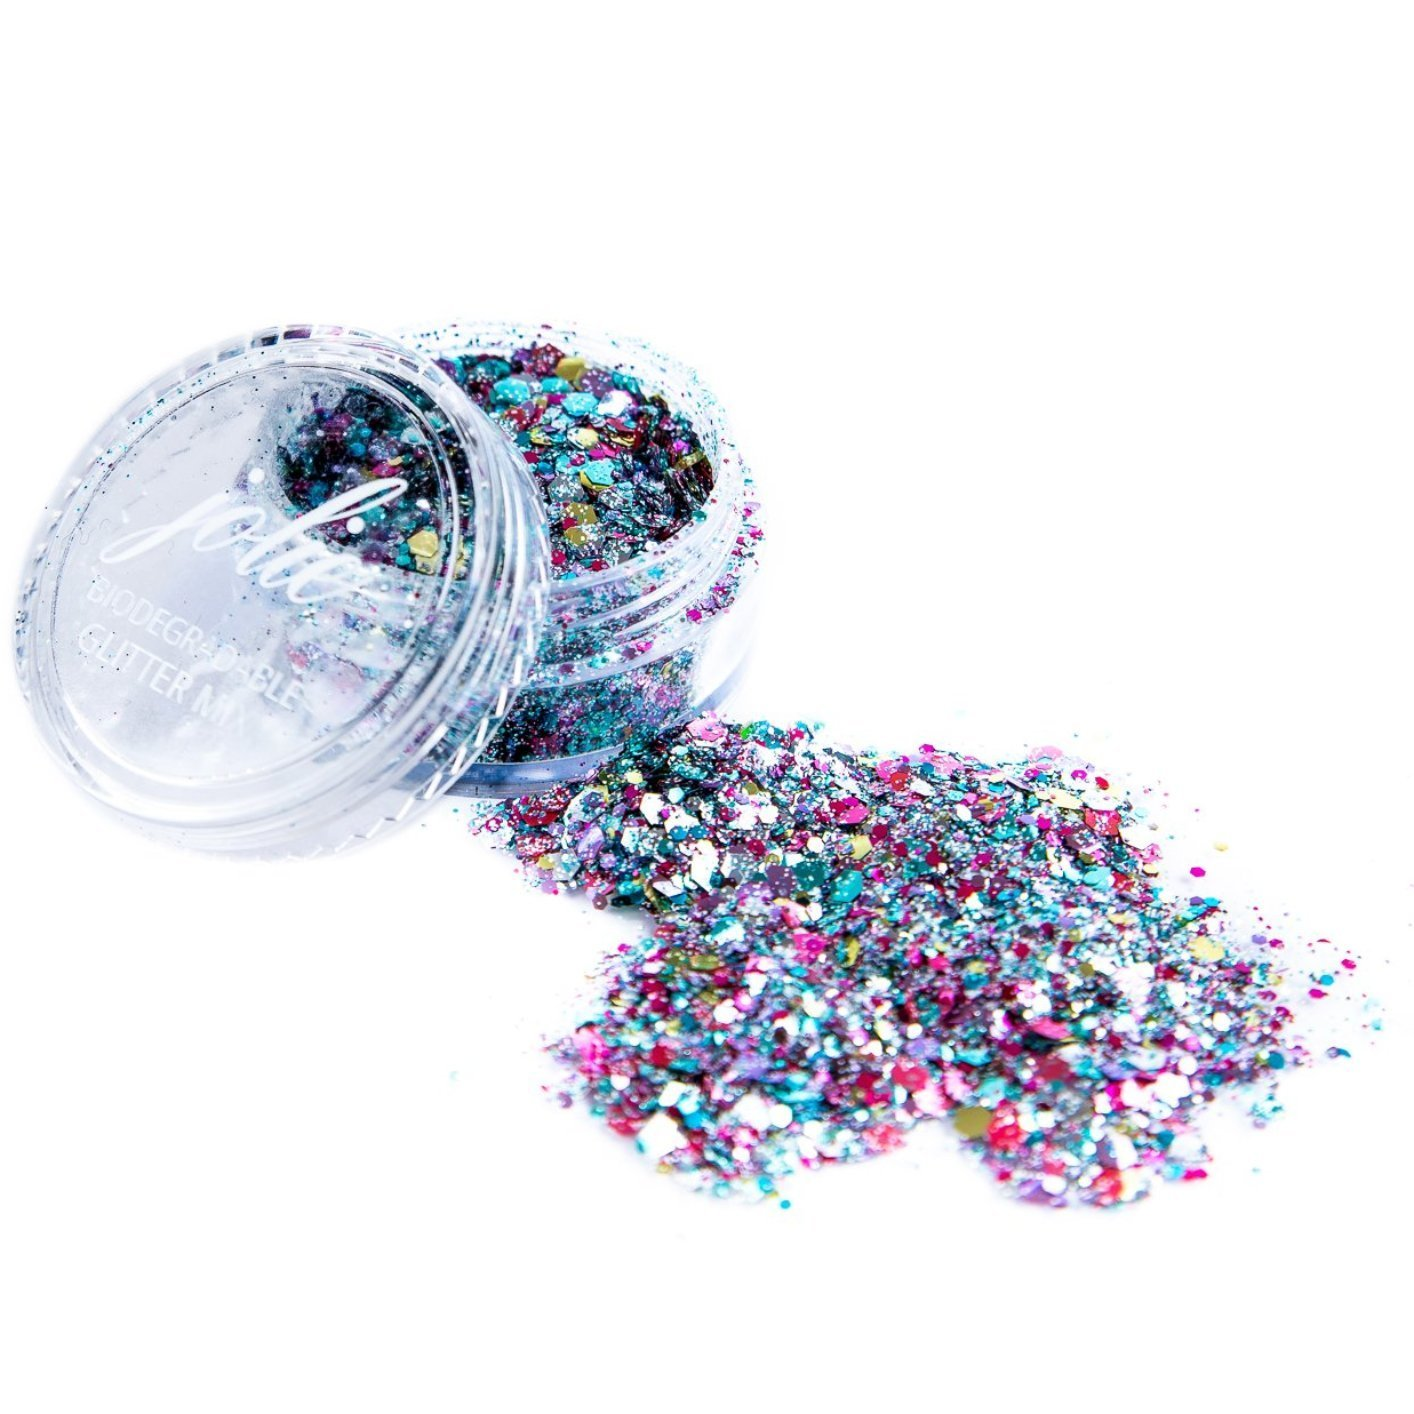 Biodegradable Chunky Mixed Festival Glitter - Unicorn Hopes